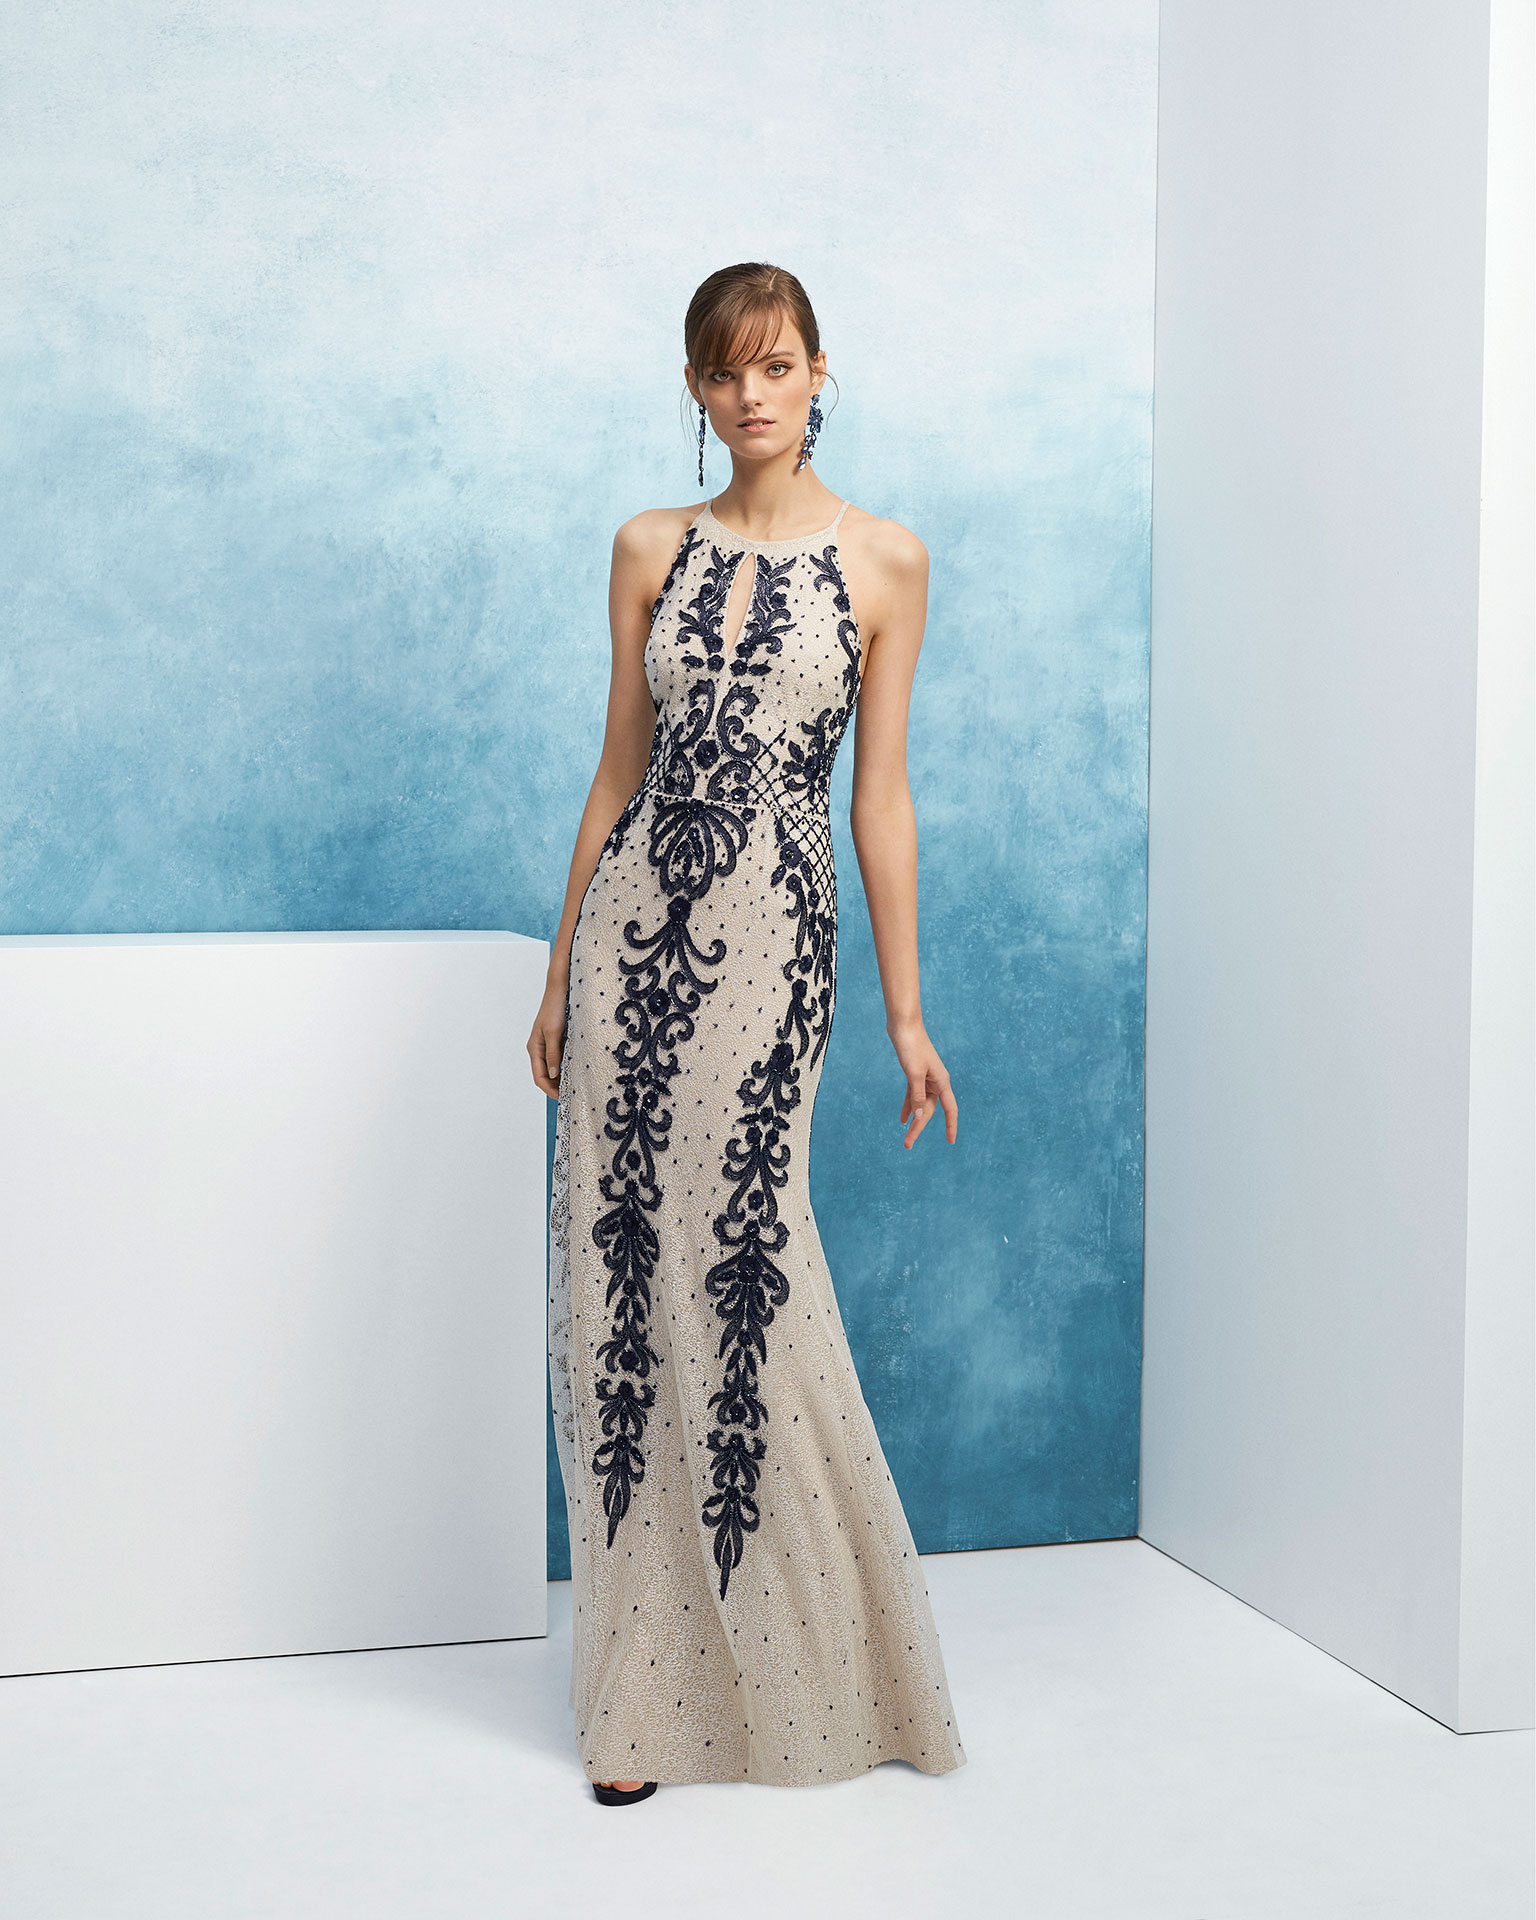 Beaded cocktail dress. With halter neckline with front teardrop opening and shoulder straps. 2019 FIESTA AIRE BARCELONA Collection.